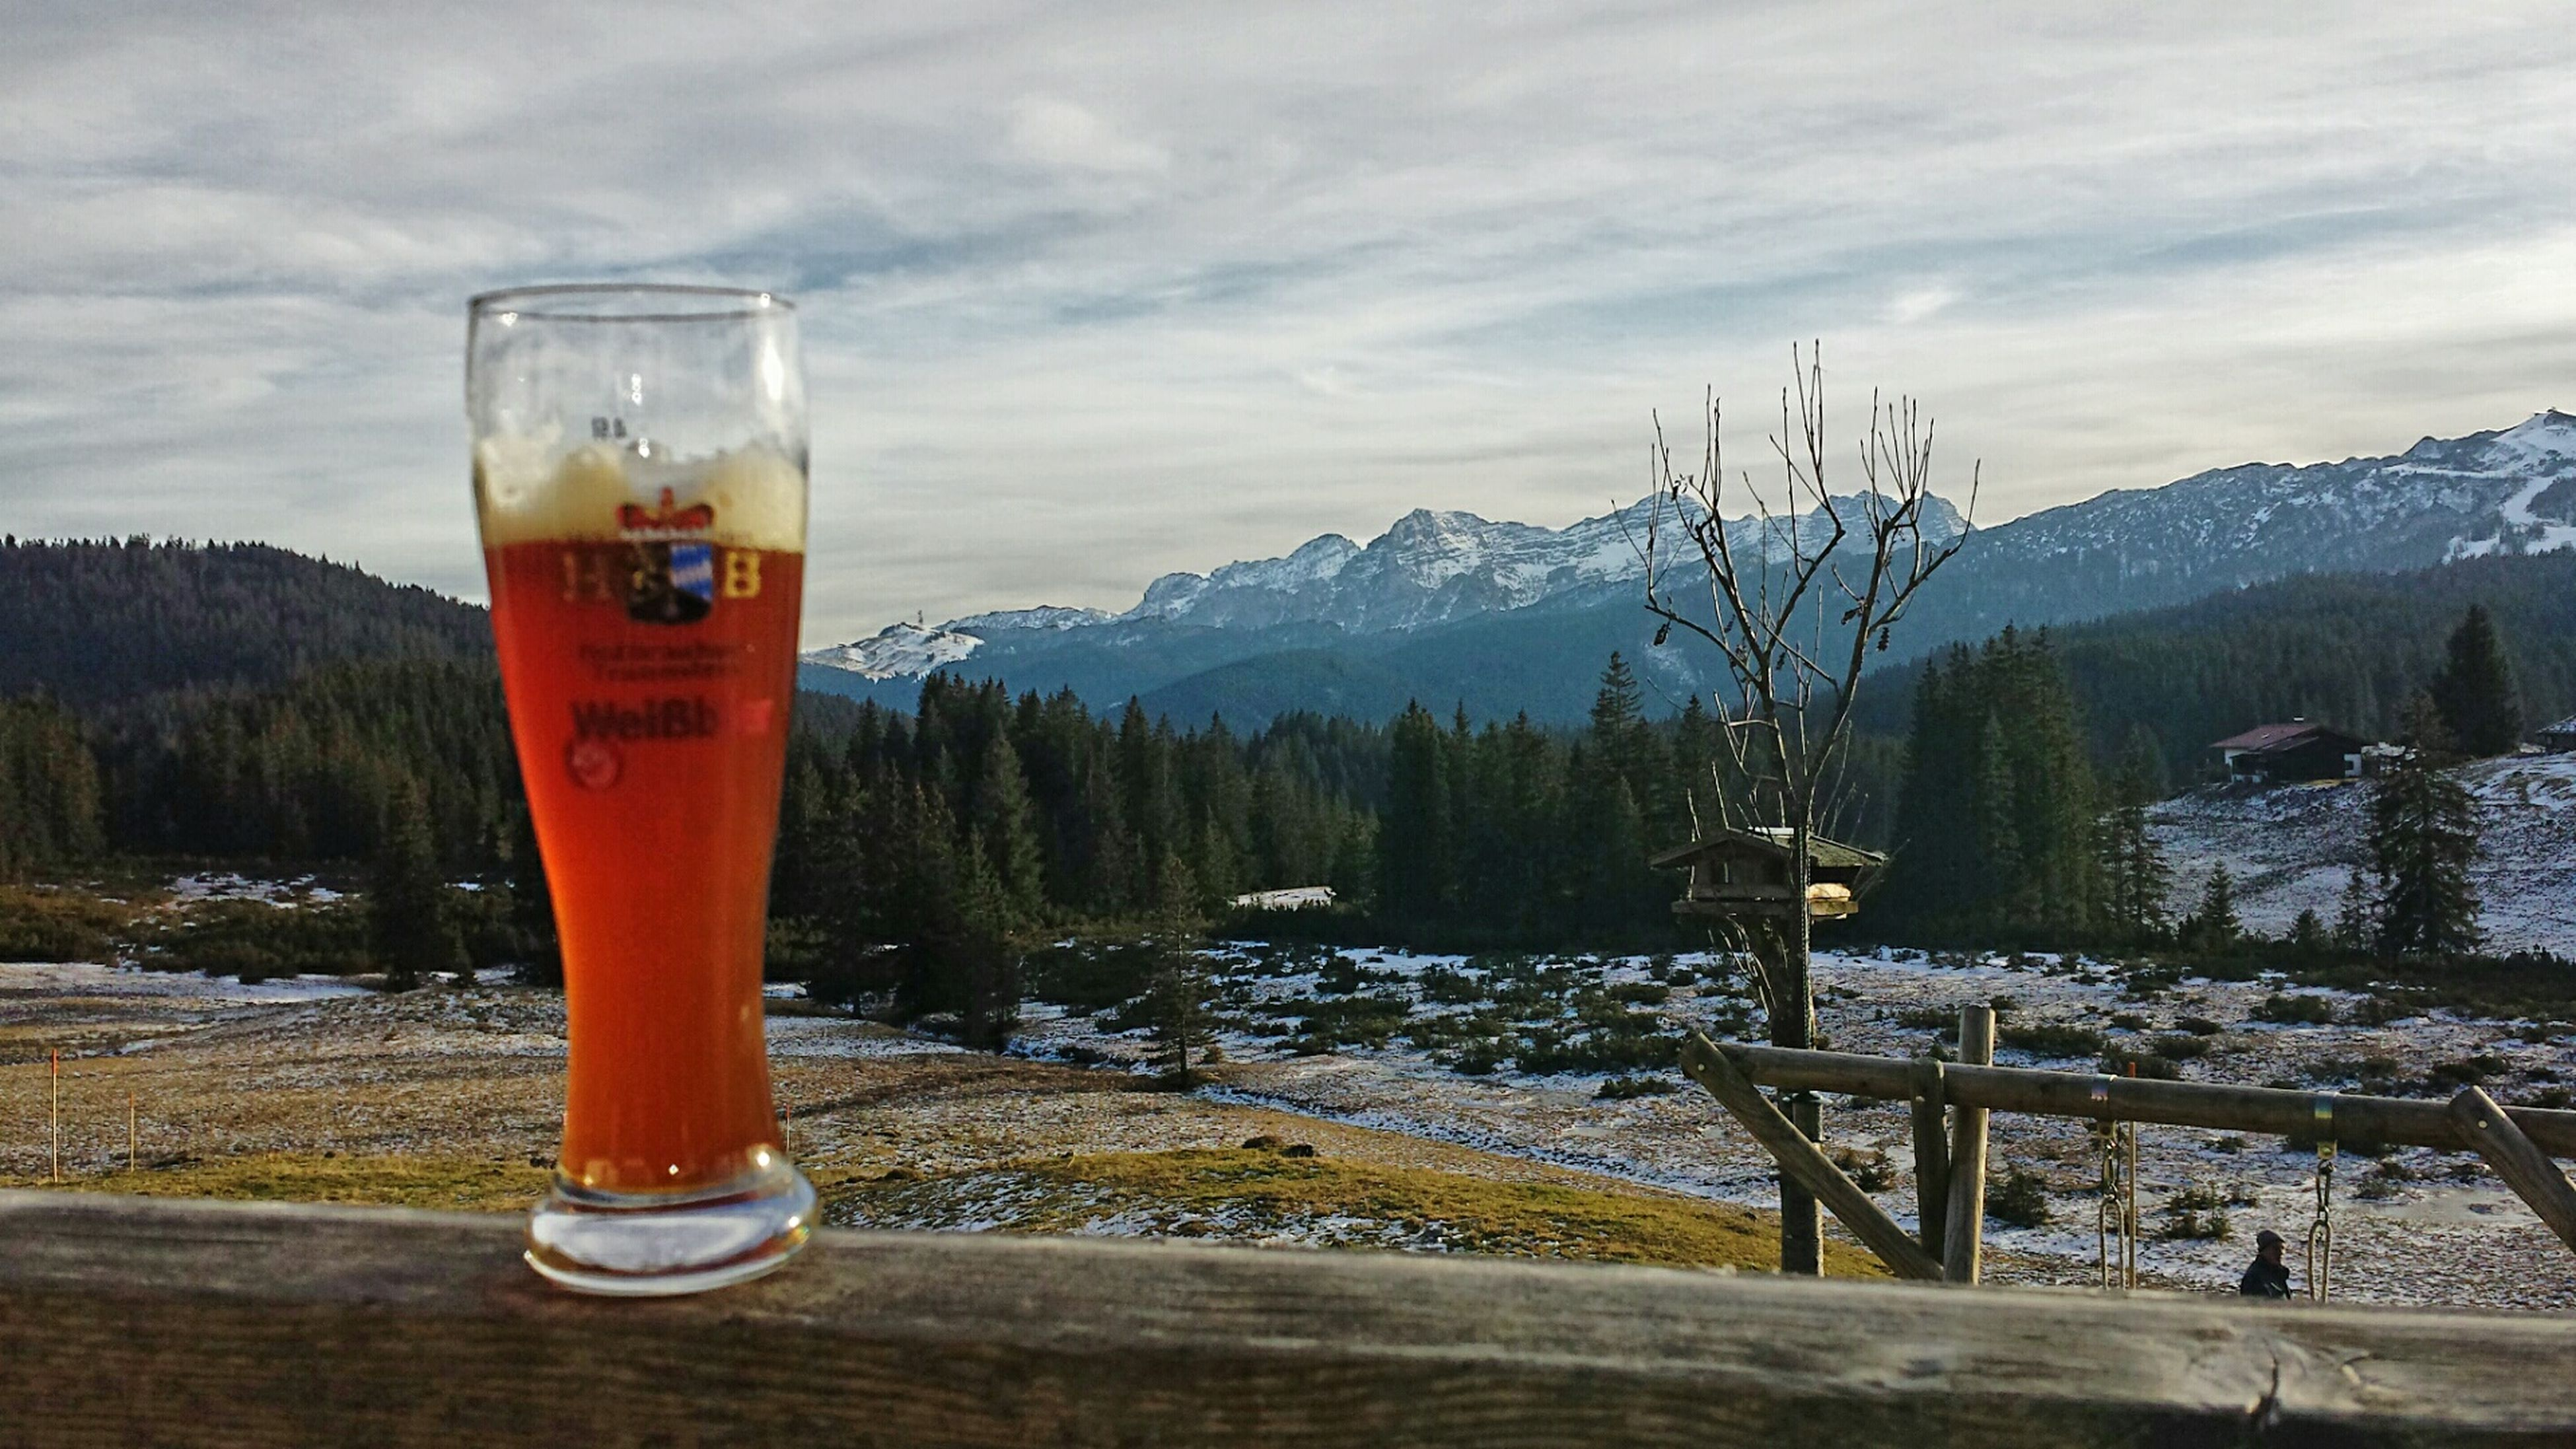 drink, food and drink, cold temperature, mountain, refreshment, sky, drinking glass, table, mountain range, water, tranquil scene, scenics, alcohol, cloud - sky, ice, tranquility, text, landscape, day, winter